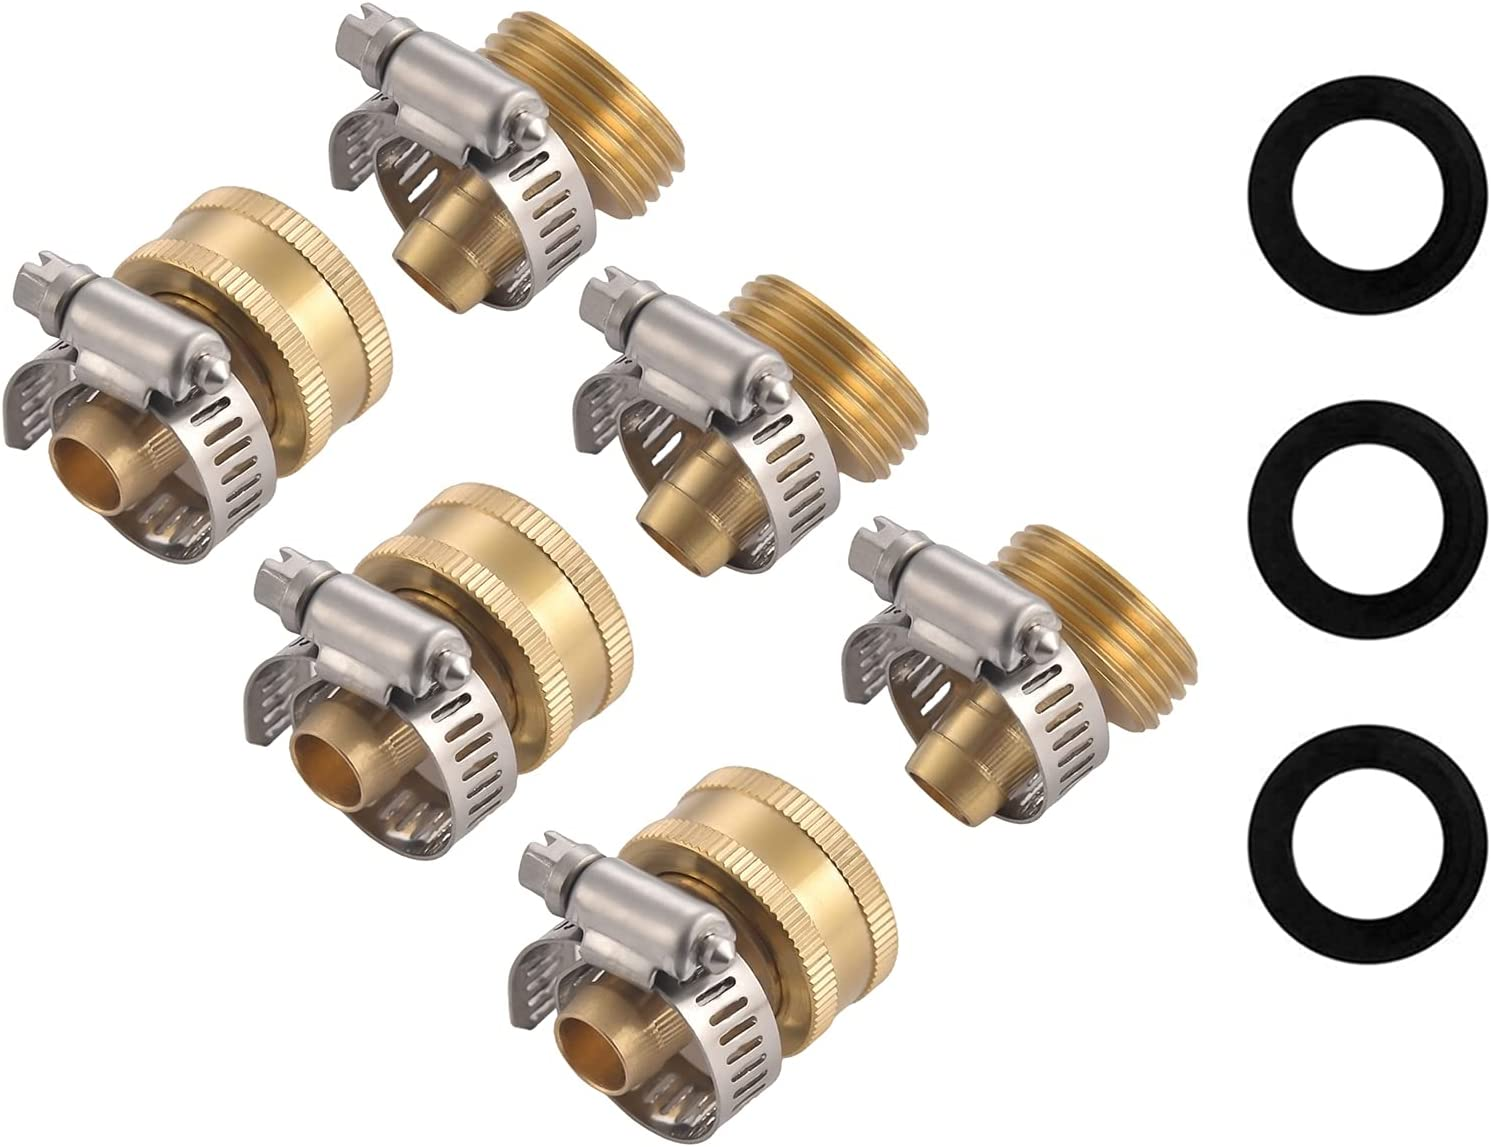 carvedexquisitely Garden Hose Repair Connector with Stainless Steel Clamps,5/8